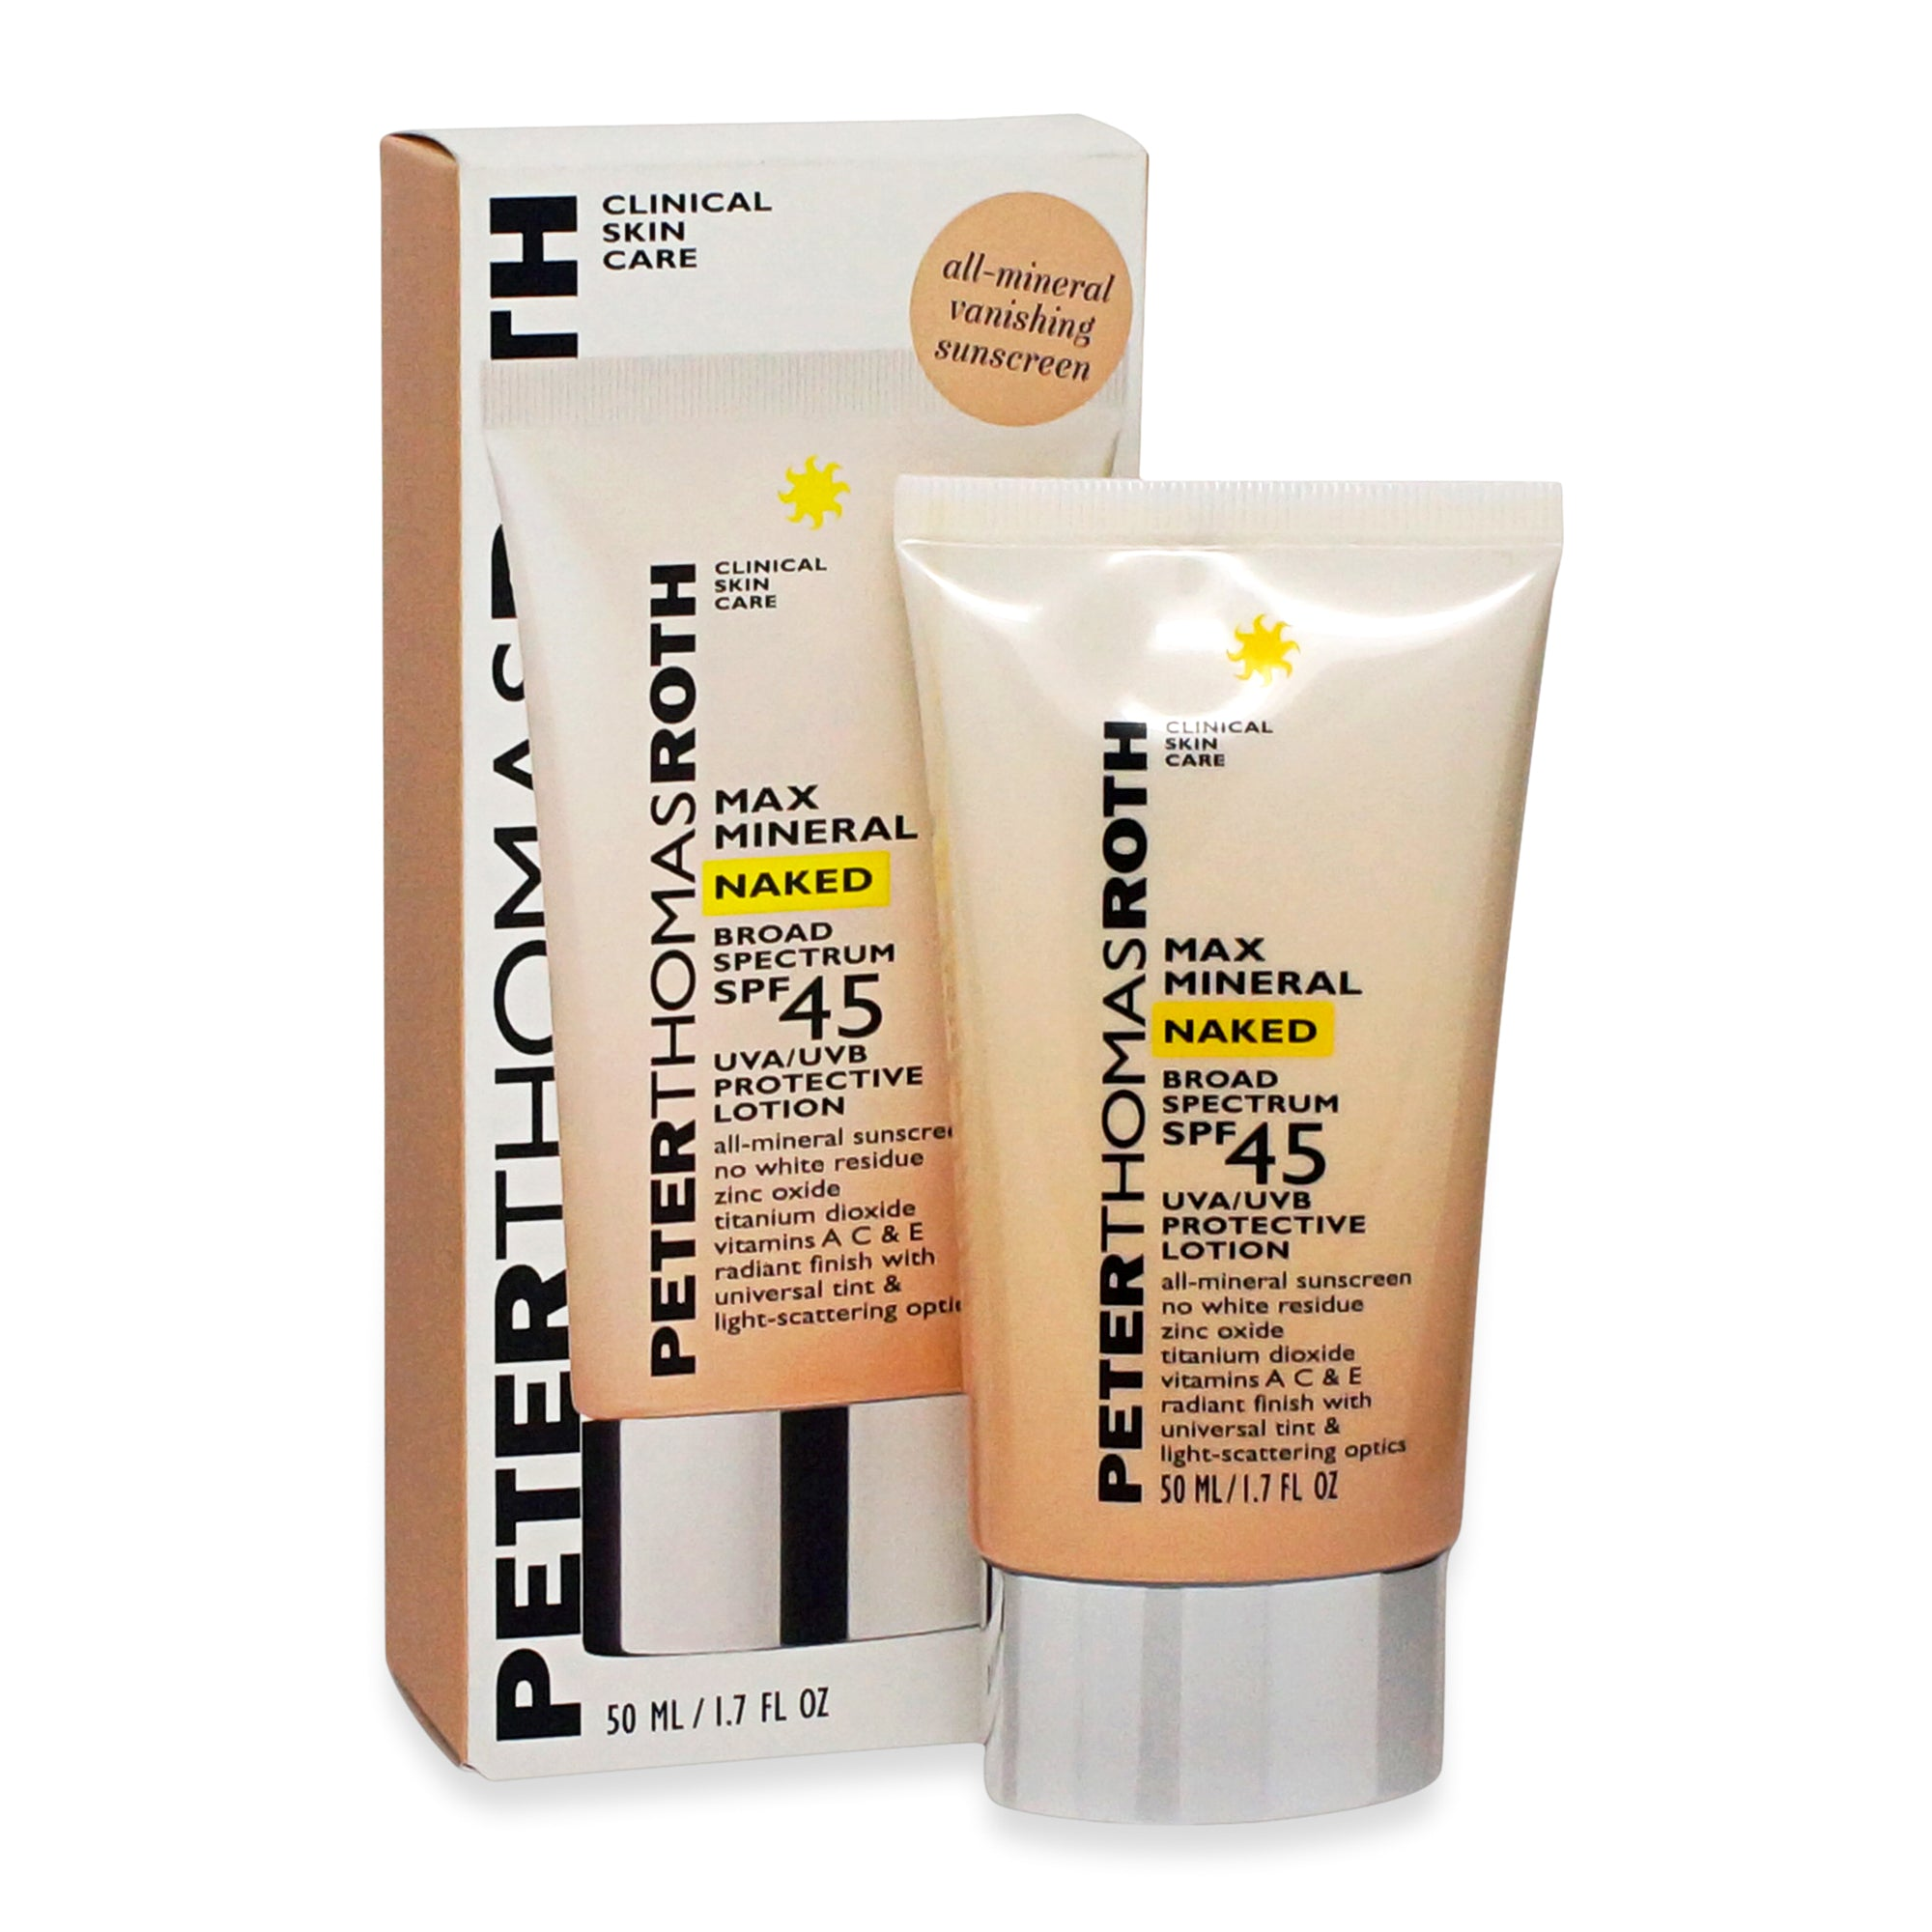 PETER THOMAS ROTH ~ MAX MINERAL NAKED SPF45 LOTION ~ 1.7OZ